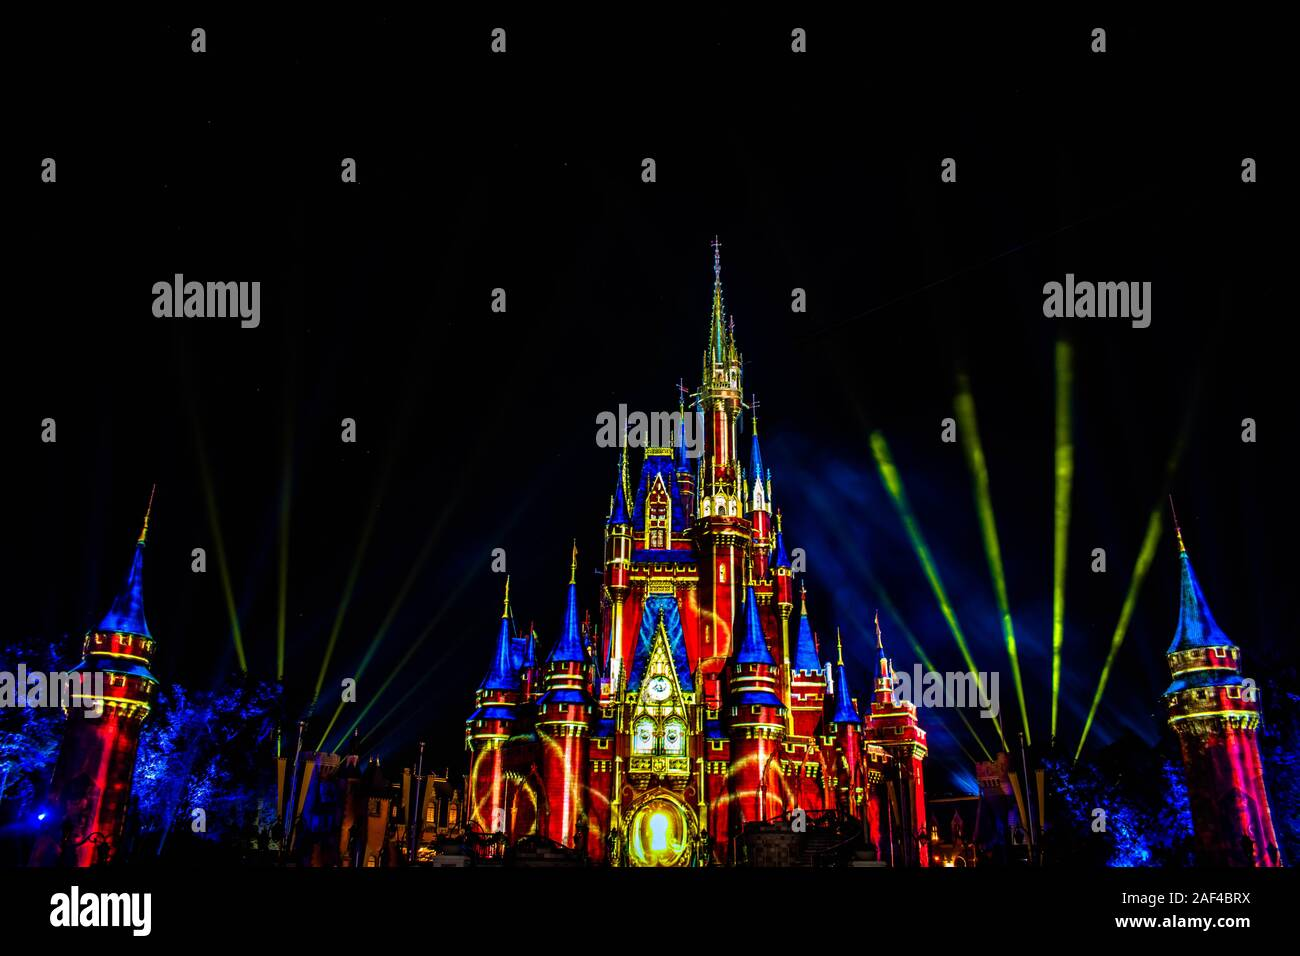 Cinderella Castle High Resolution Stock Photography And Images Alamy